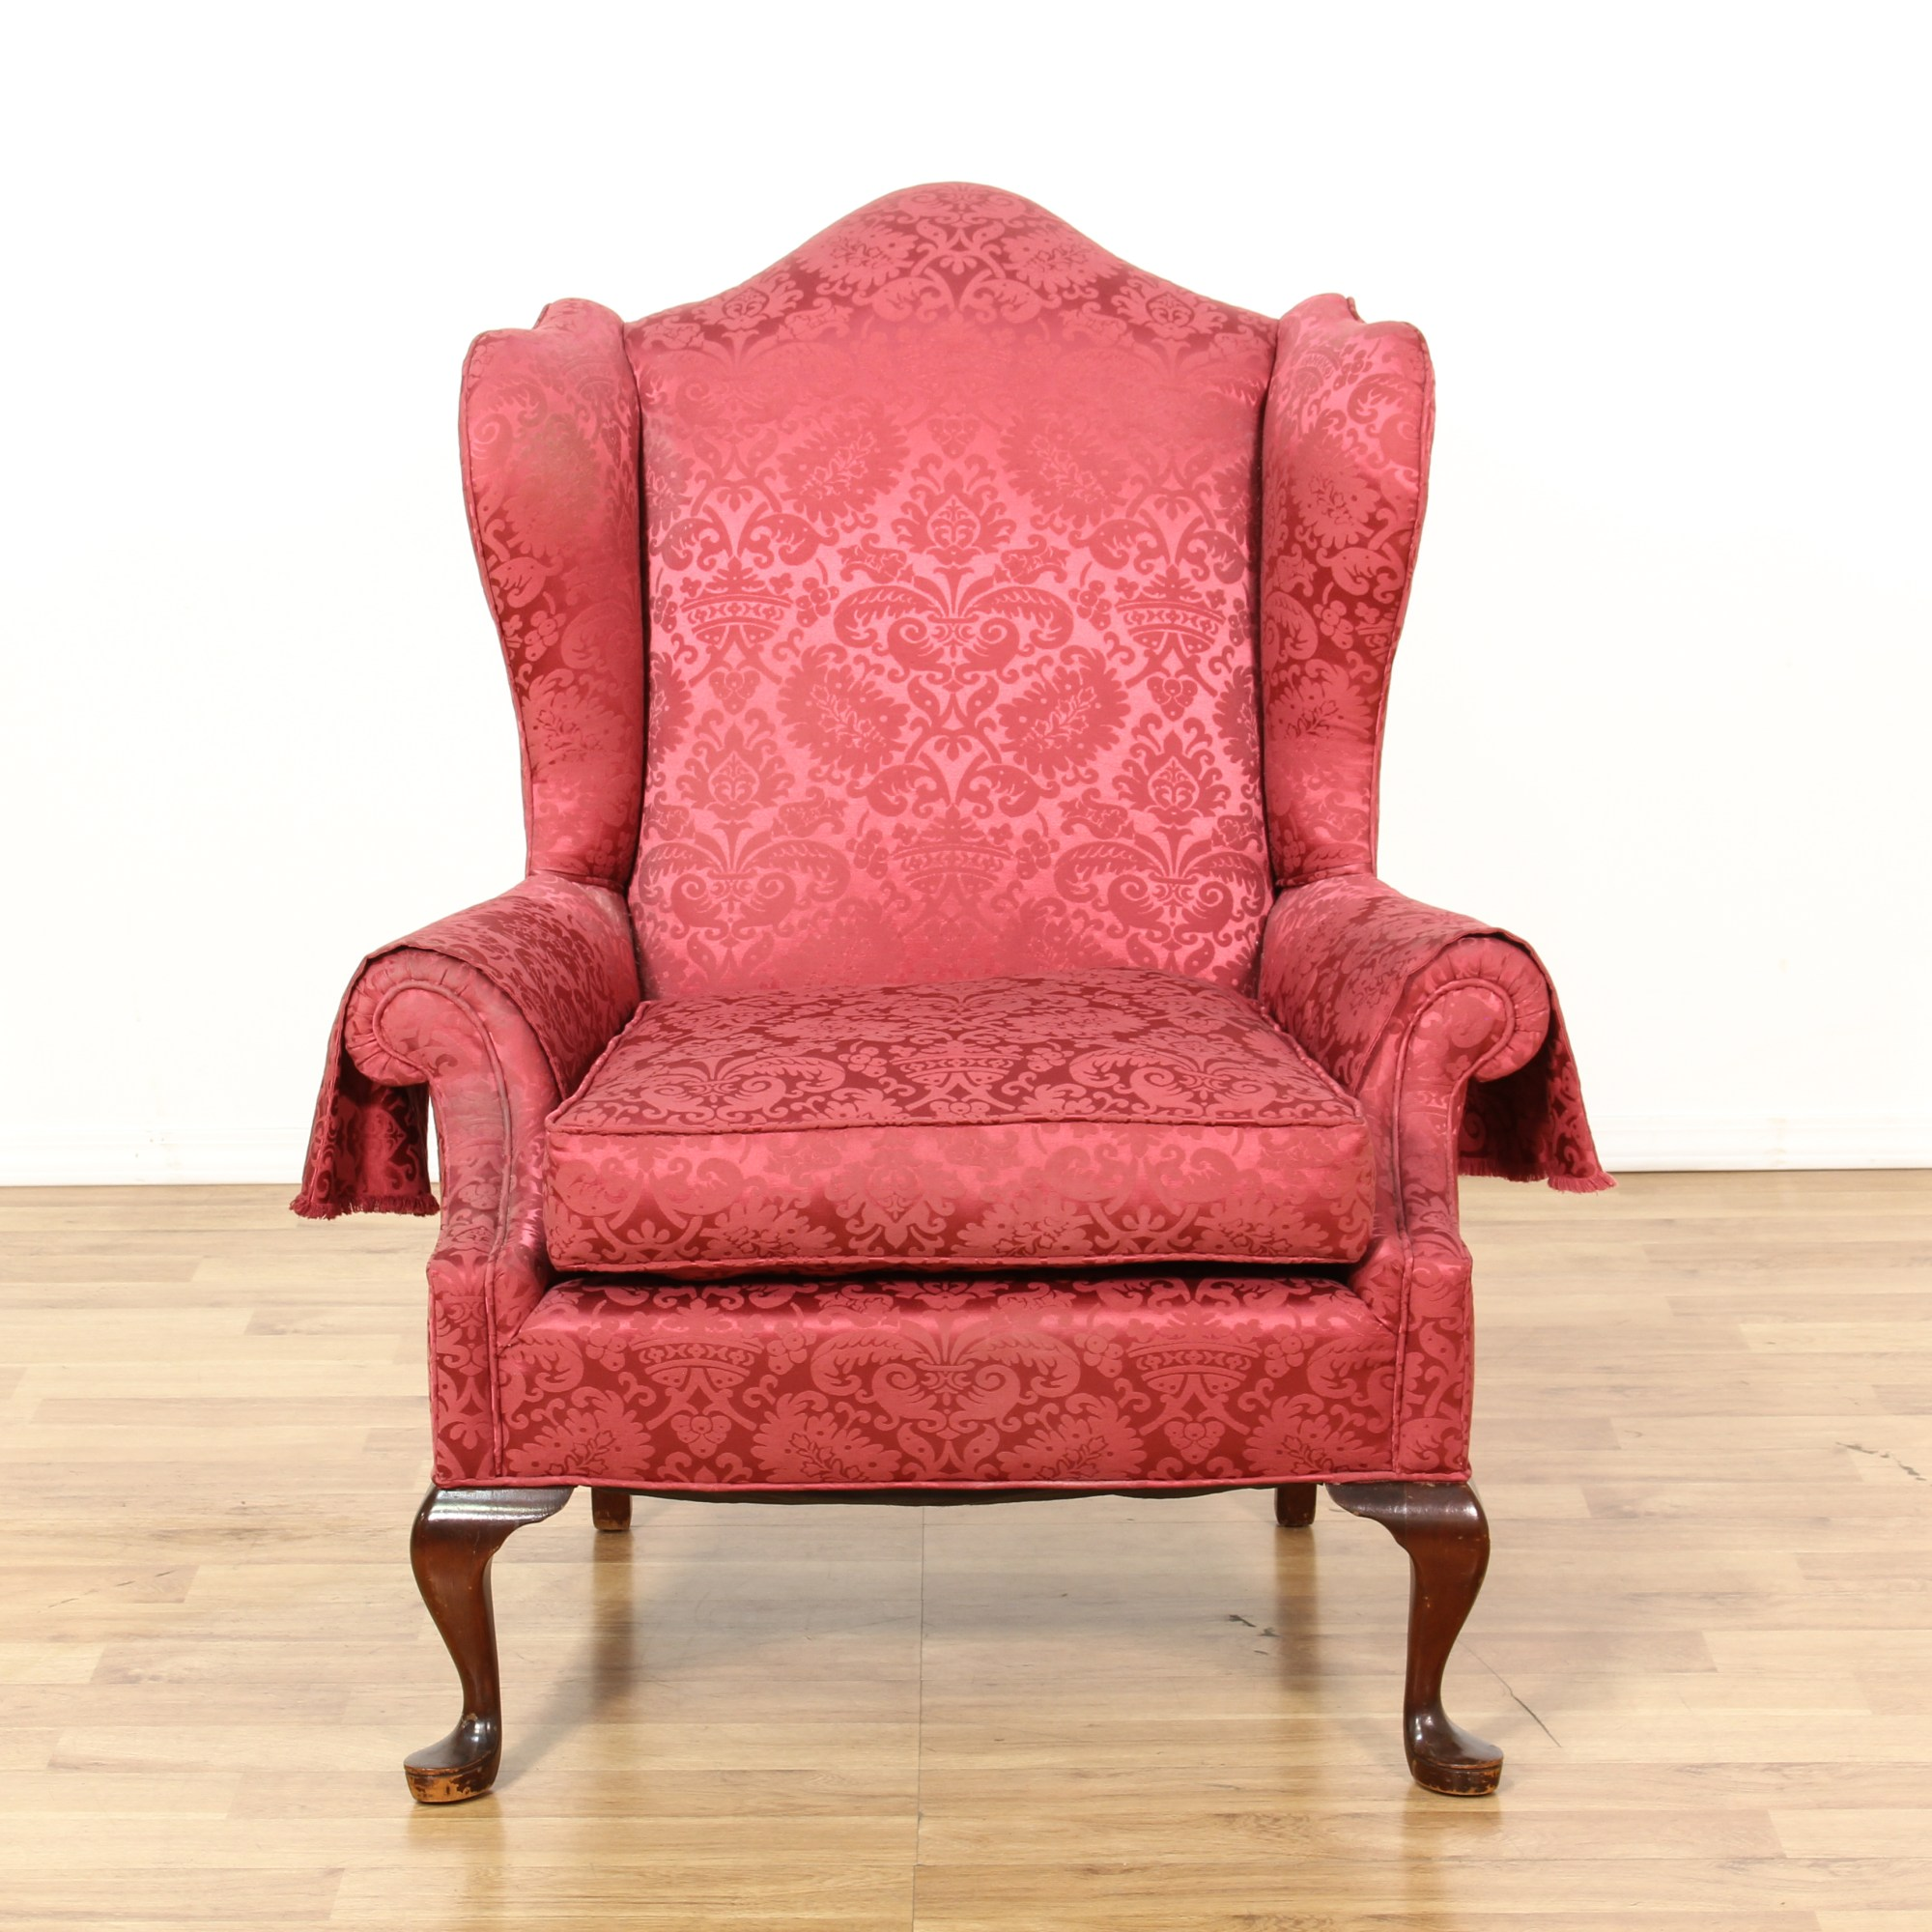 Floral Wingback Chair Red Floral Damask Wingback Armchair Loveseat Vintage